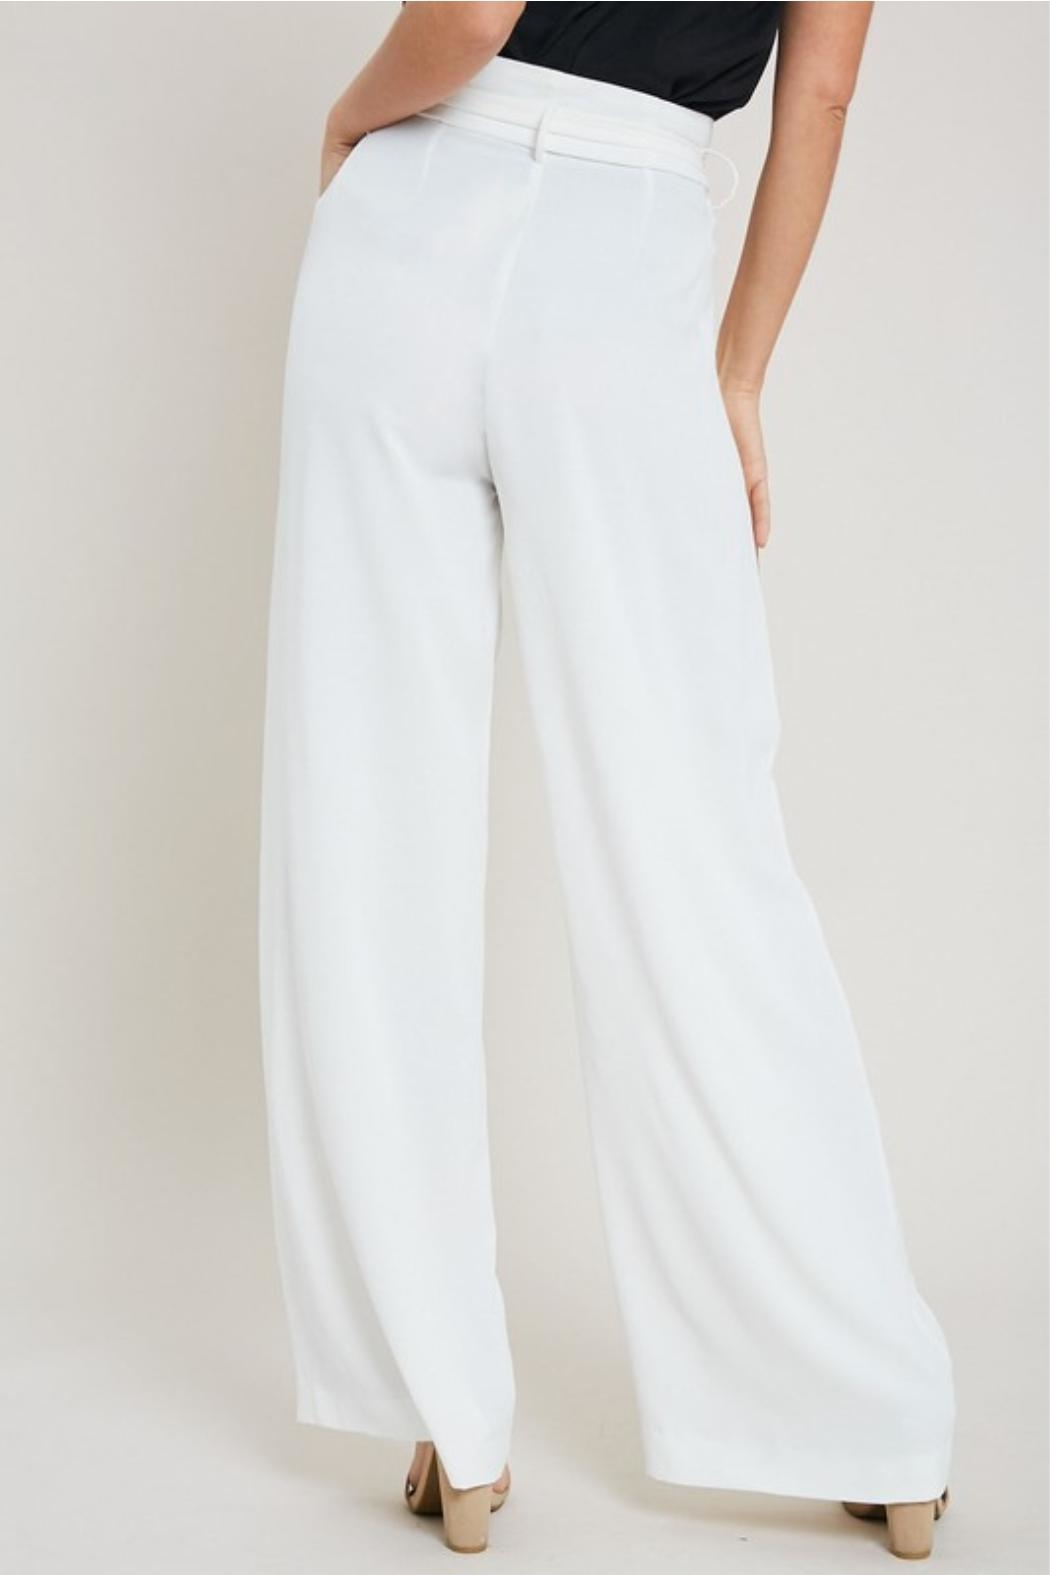 eesome White Dress Pants - Front Full Image